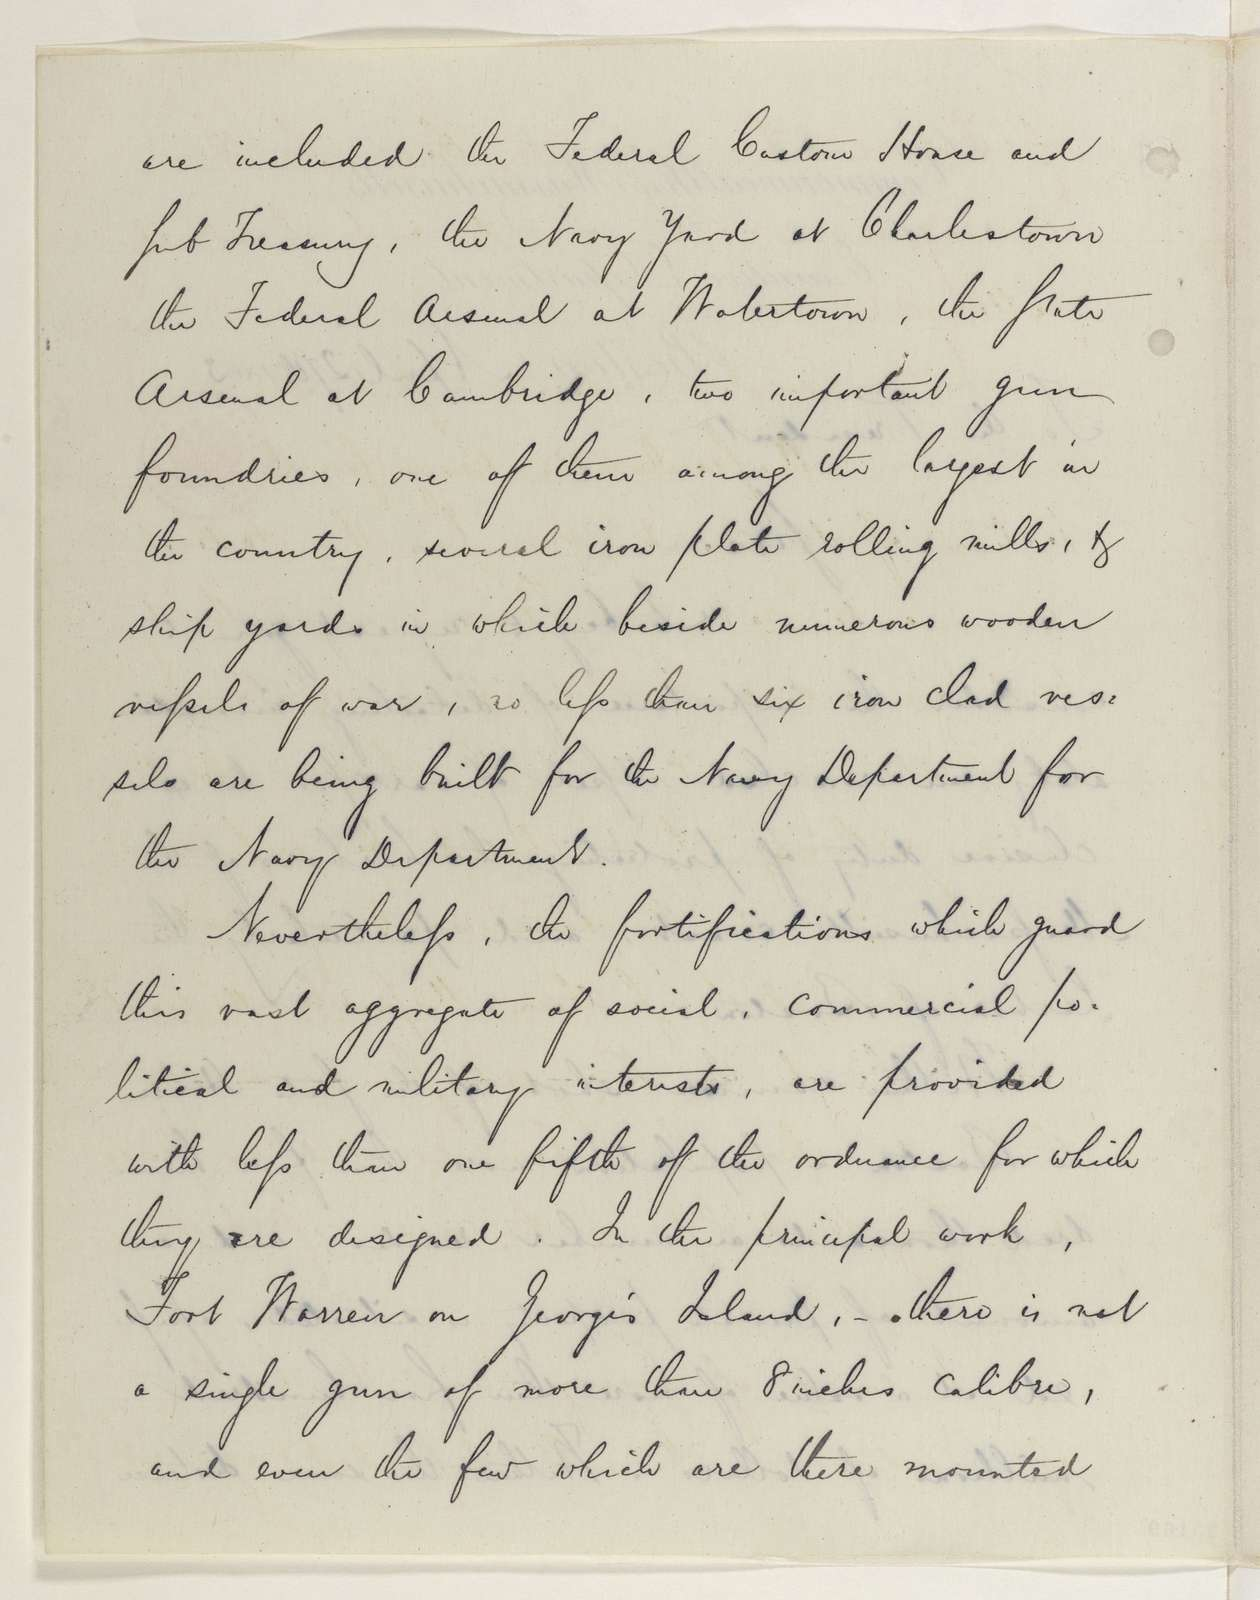 Abraham Lincoln papers: Series 1. General Correspondence. 1833-1916: John A. Andrew to Abraham Lincoln, Monday, April 27, 1863 (Requests ironclad to protect Boston harbor)